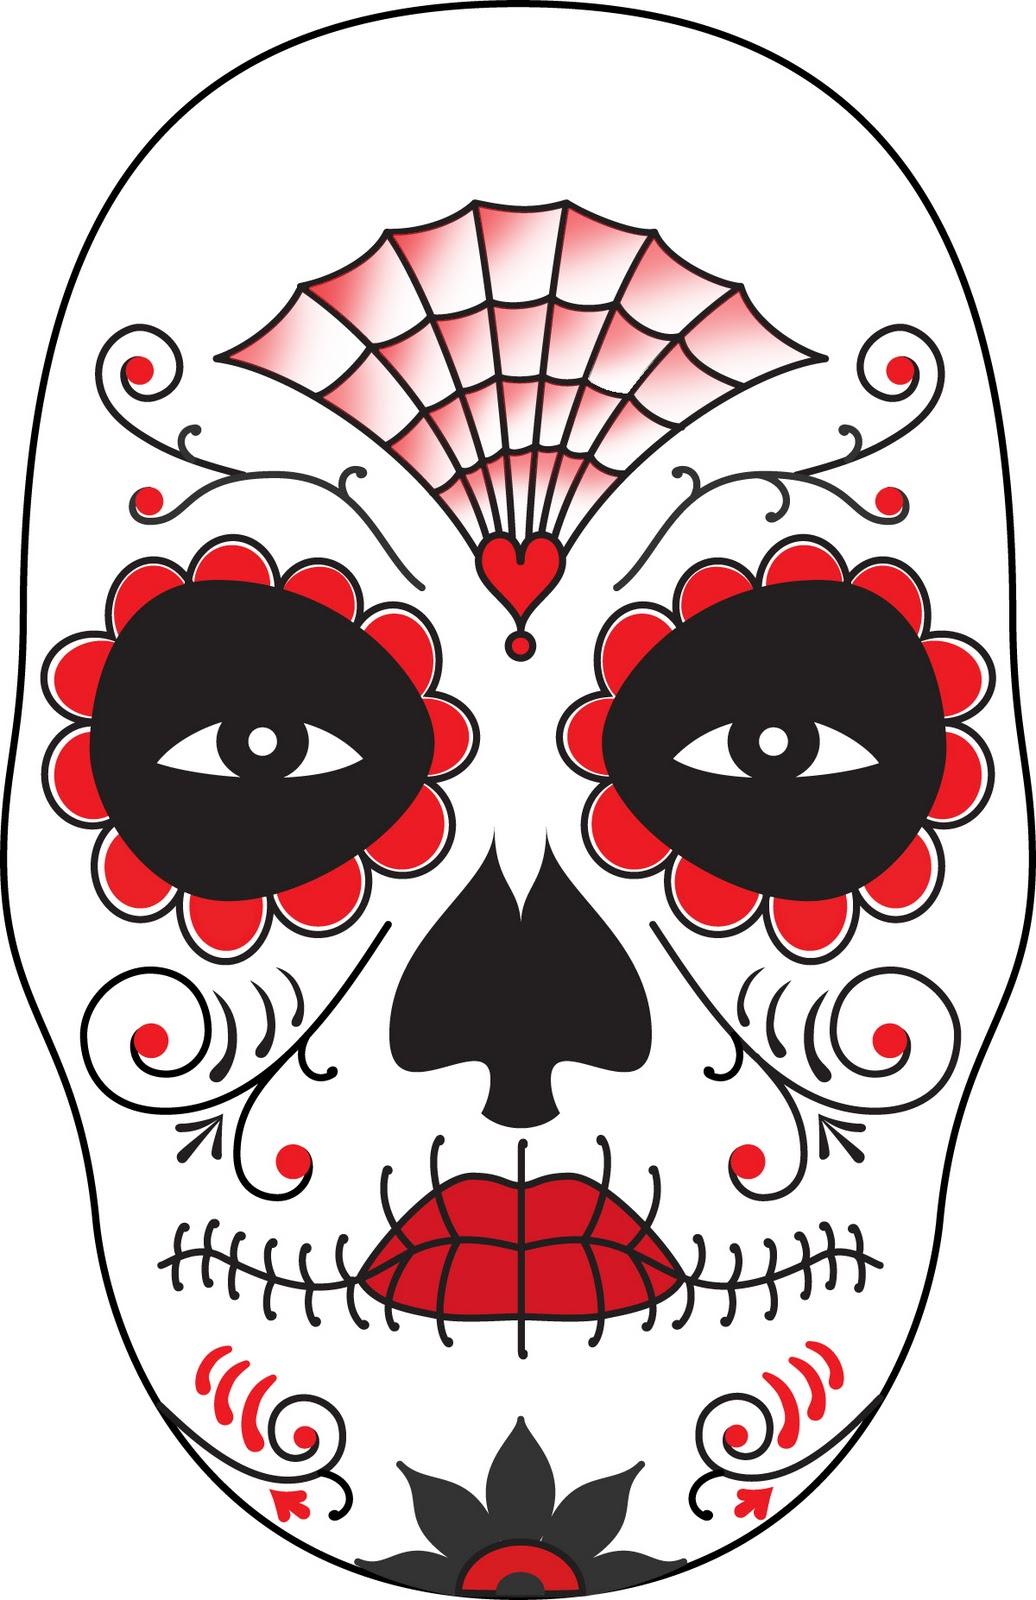 Eyeshadow Template: Surface Fragments: How To Make A Day Of The Dead Mask